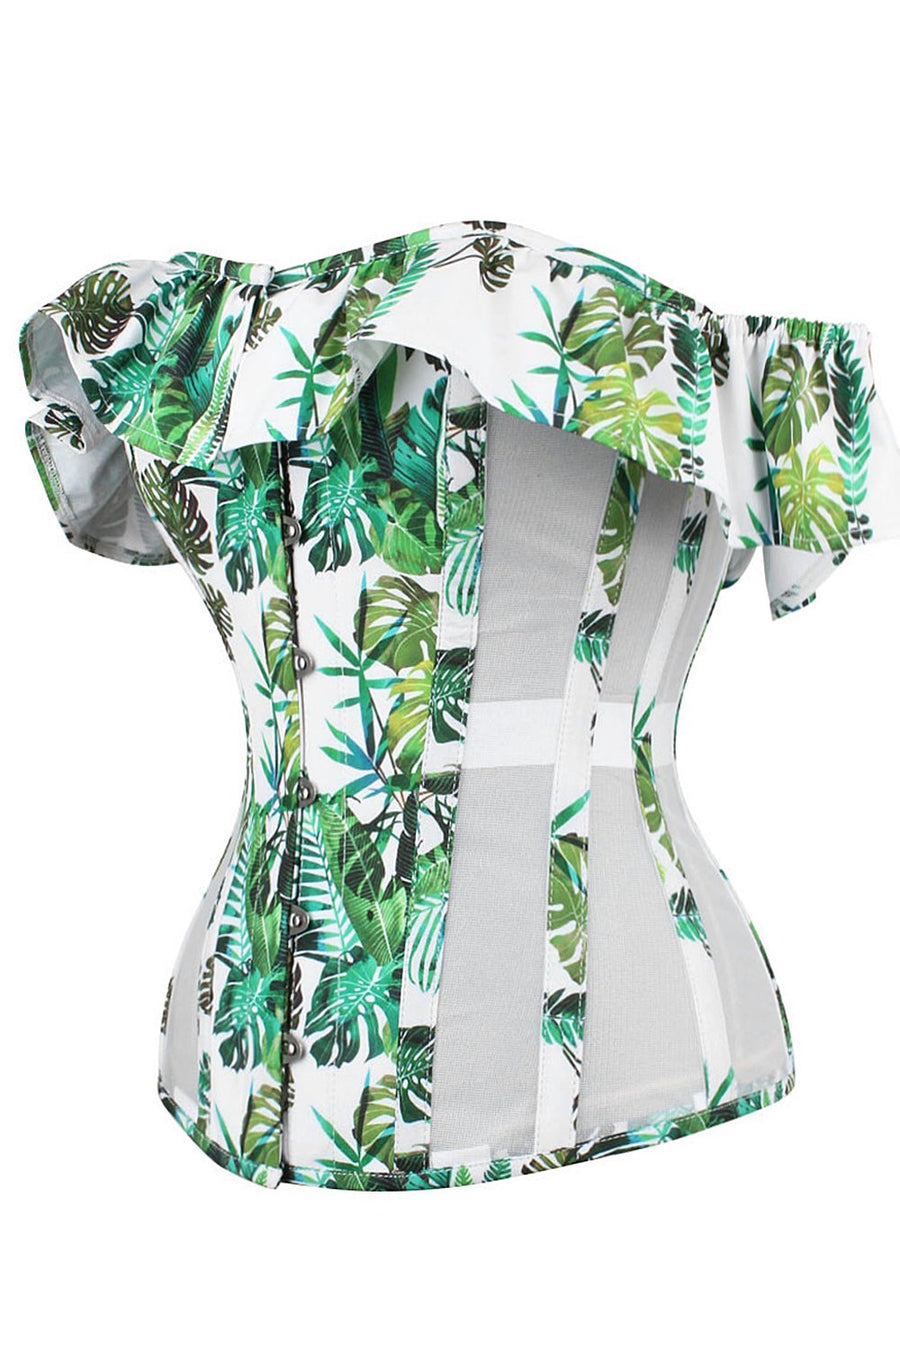 Tropical Print Overbust With Mesh Panels And Sleeves